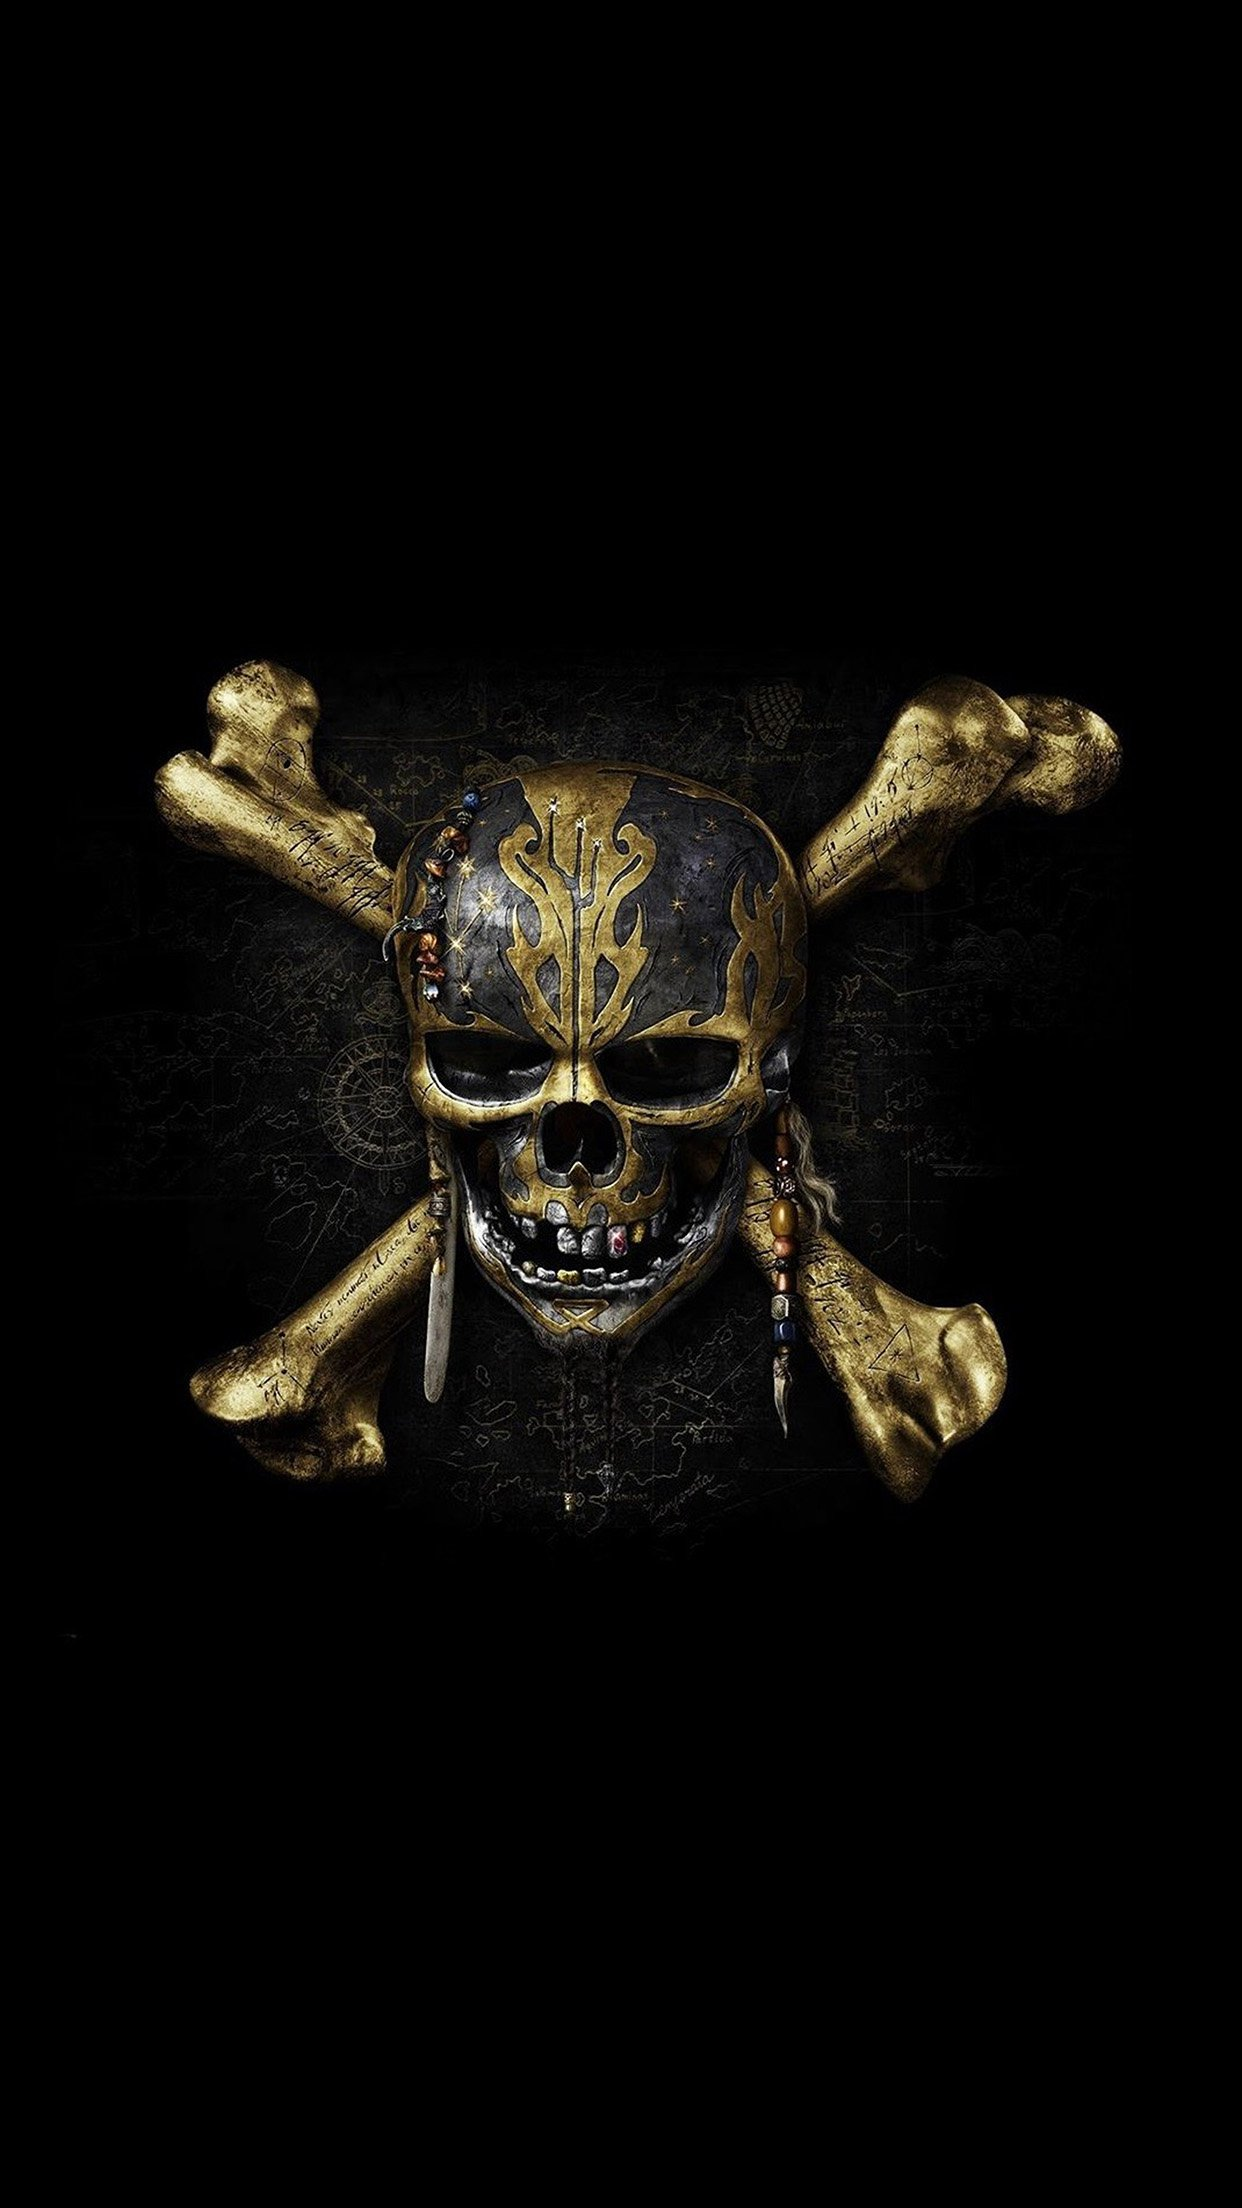 Skull Pirates dark 3Wallpapers iPhone Parallax Skull: Pirates dark